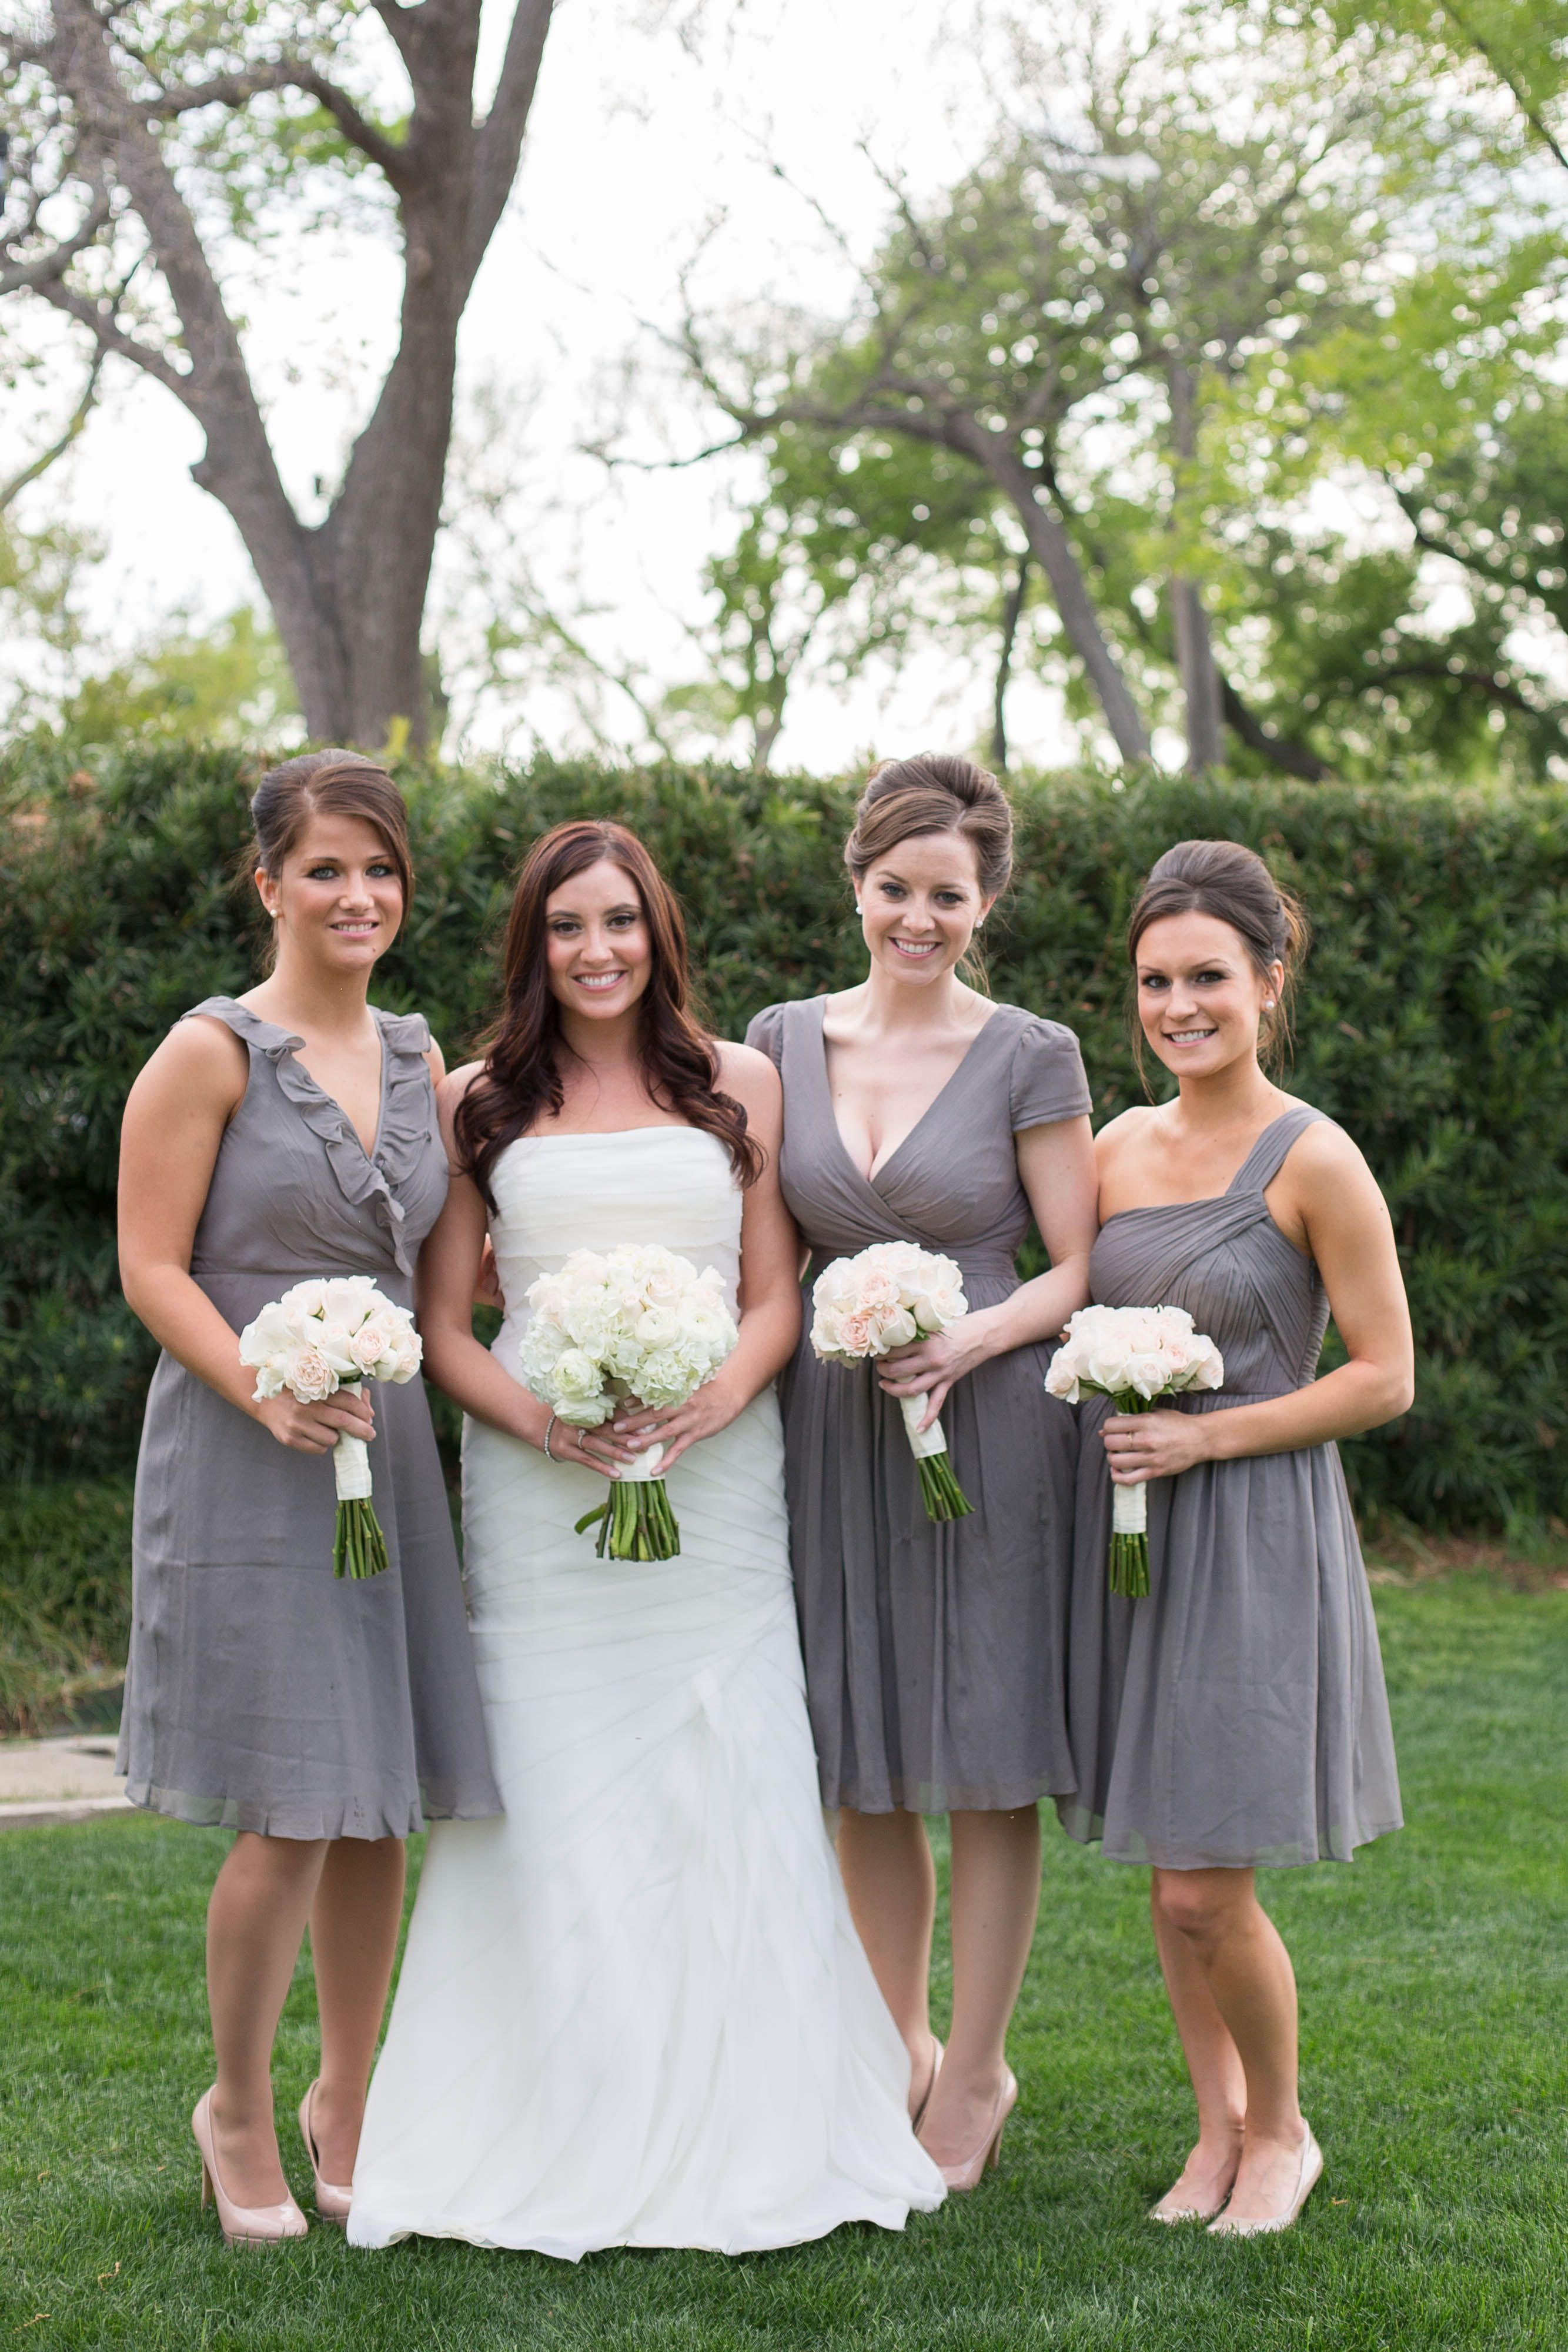 Middle gray dress thats the one we are talking about sam j crew chiffon bridesmaid dresses wedding and bridal inspiration ombrellifo Images